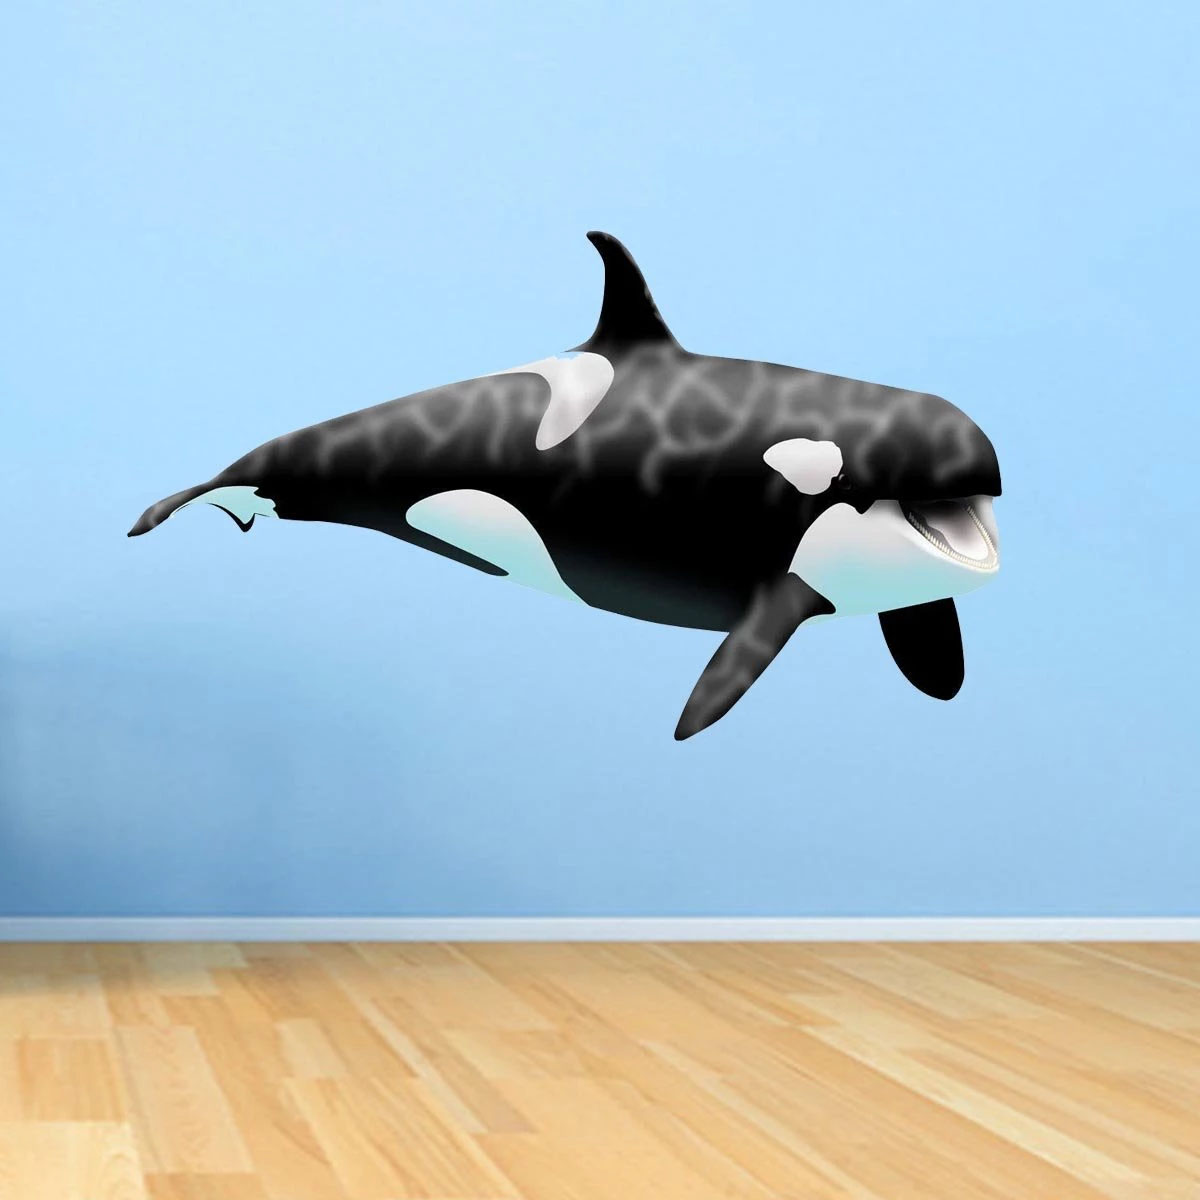 Vwaq Giant Orca Whale Wall Decal Peel And Stick Killer Whale Ocean Wall Art 30 H X 50 W Walmart Com Walmart Com